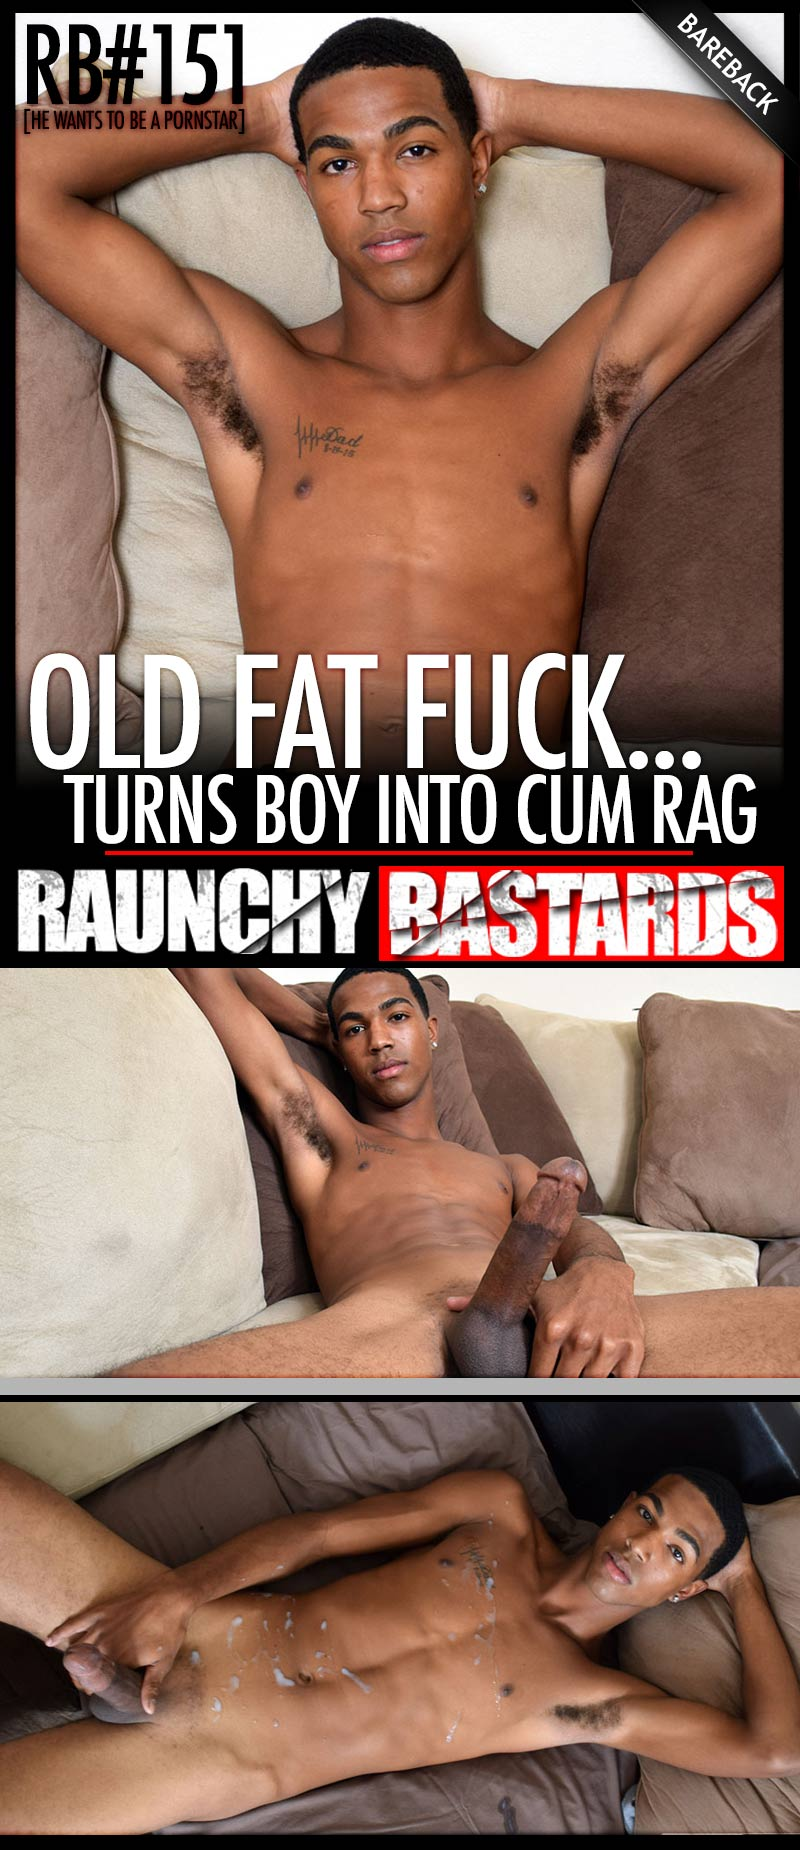 Episode 151: Old Fat Fuck Lures Boy; Turns Into Cum Rag (feat Ray Stang) at Raunch Bastards